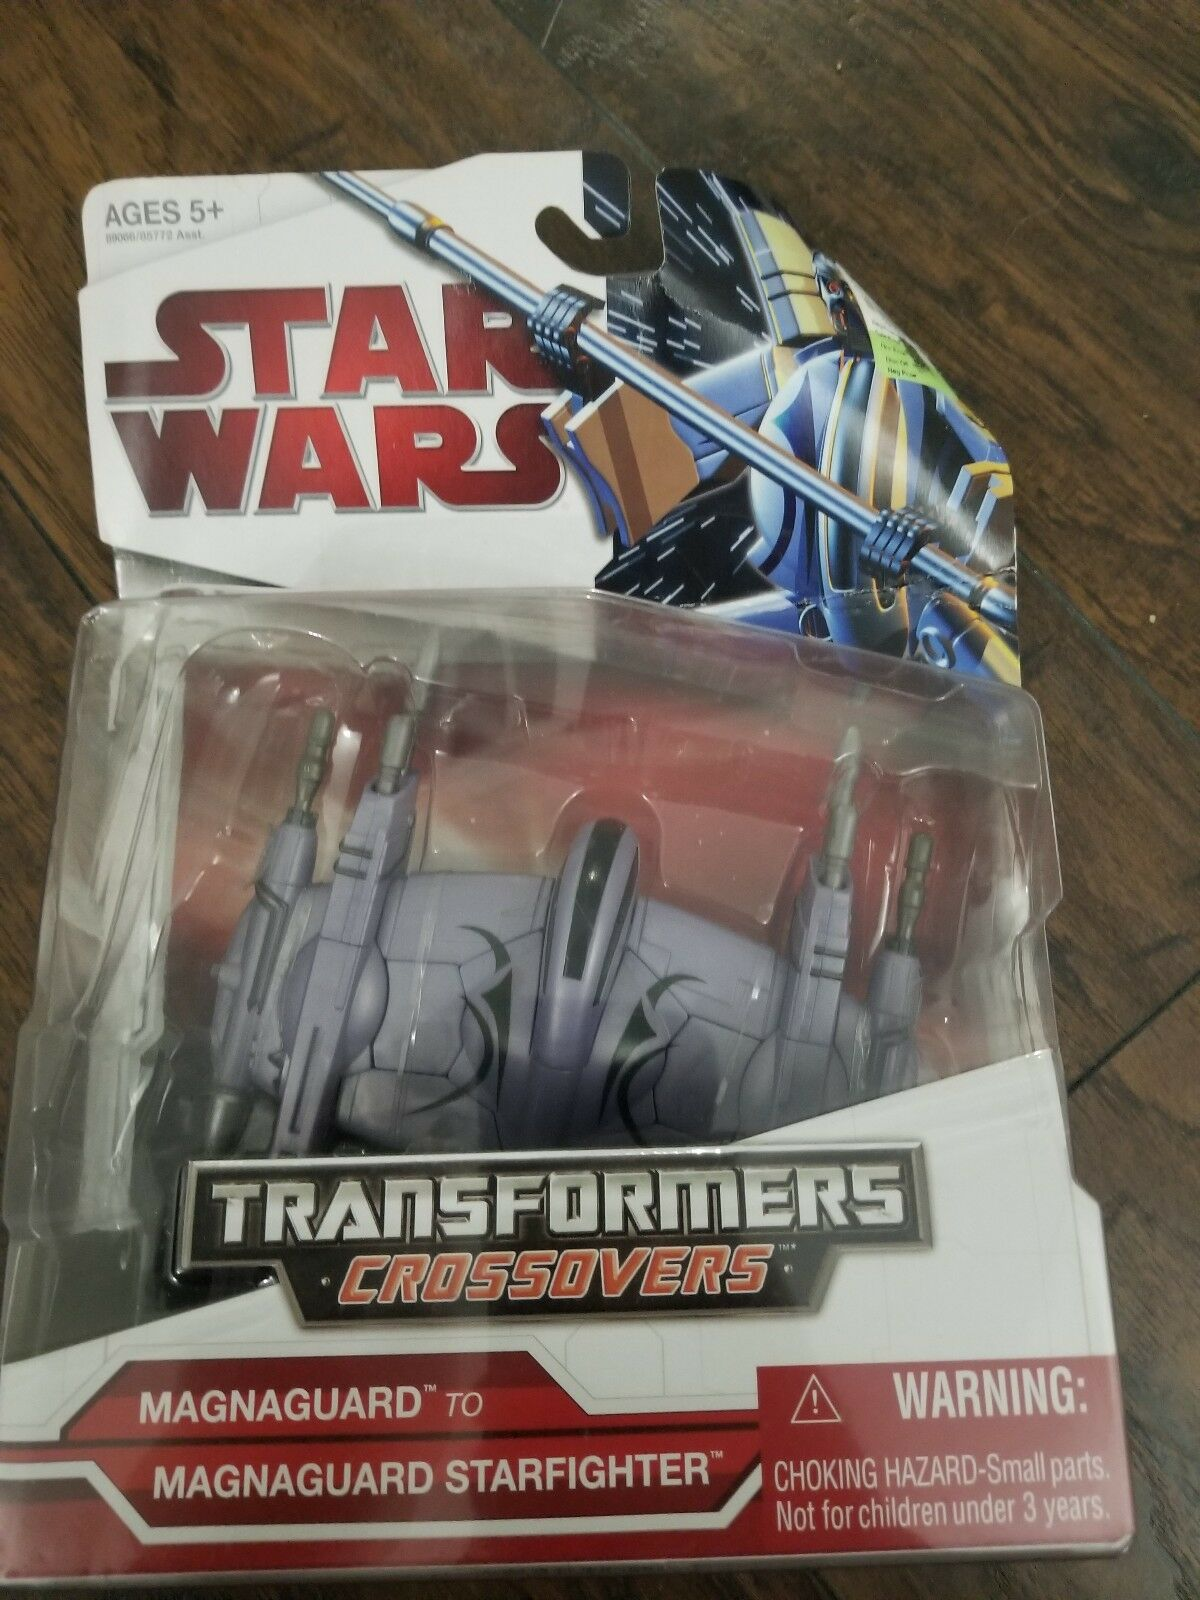 Magnaguard Starfighter Transformers Credvers Star Wars Hasbro 2009 New